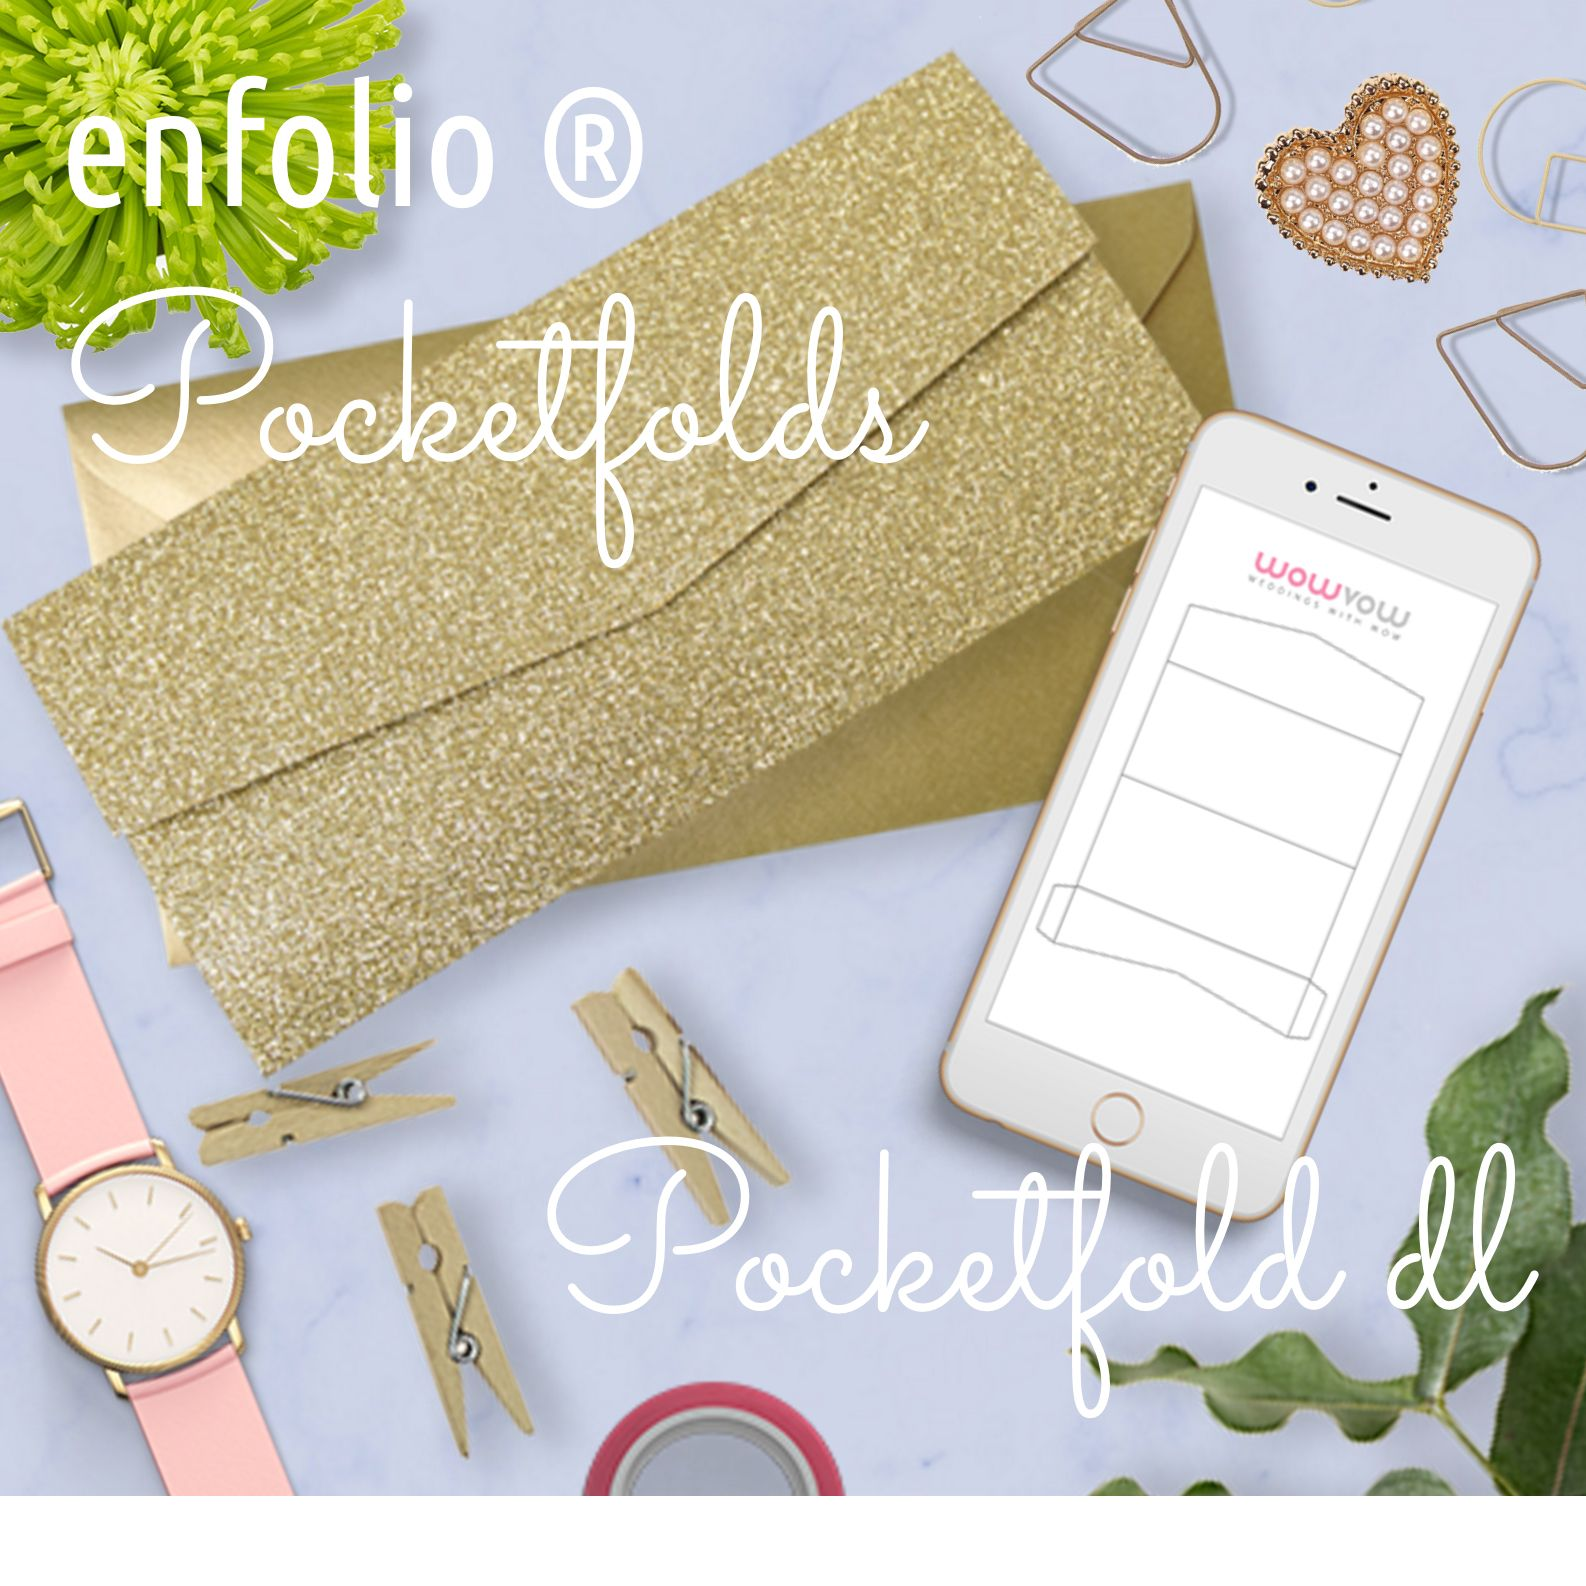 Enfolio ® Pocketfold (DL) category image